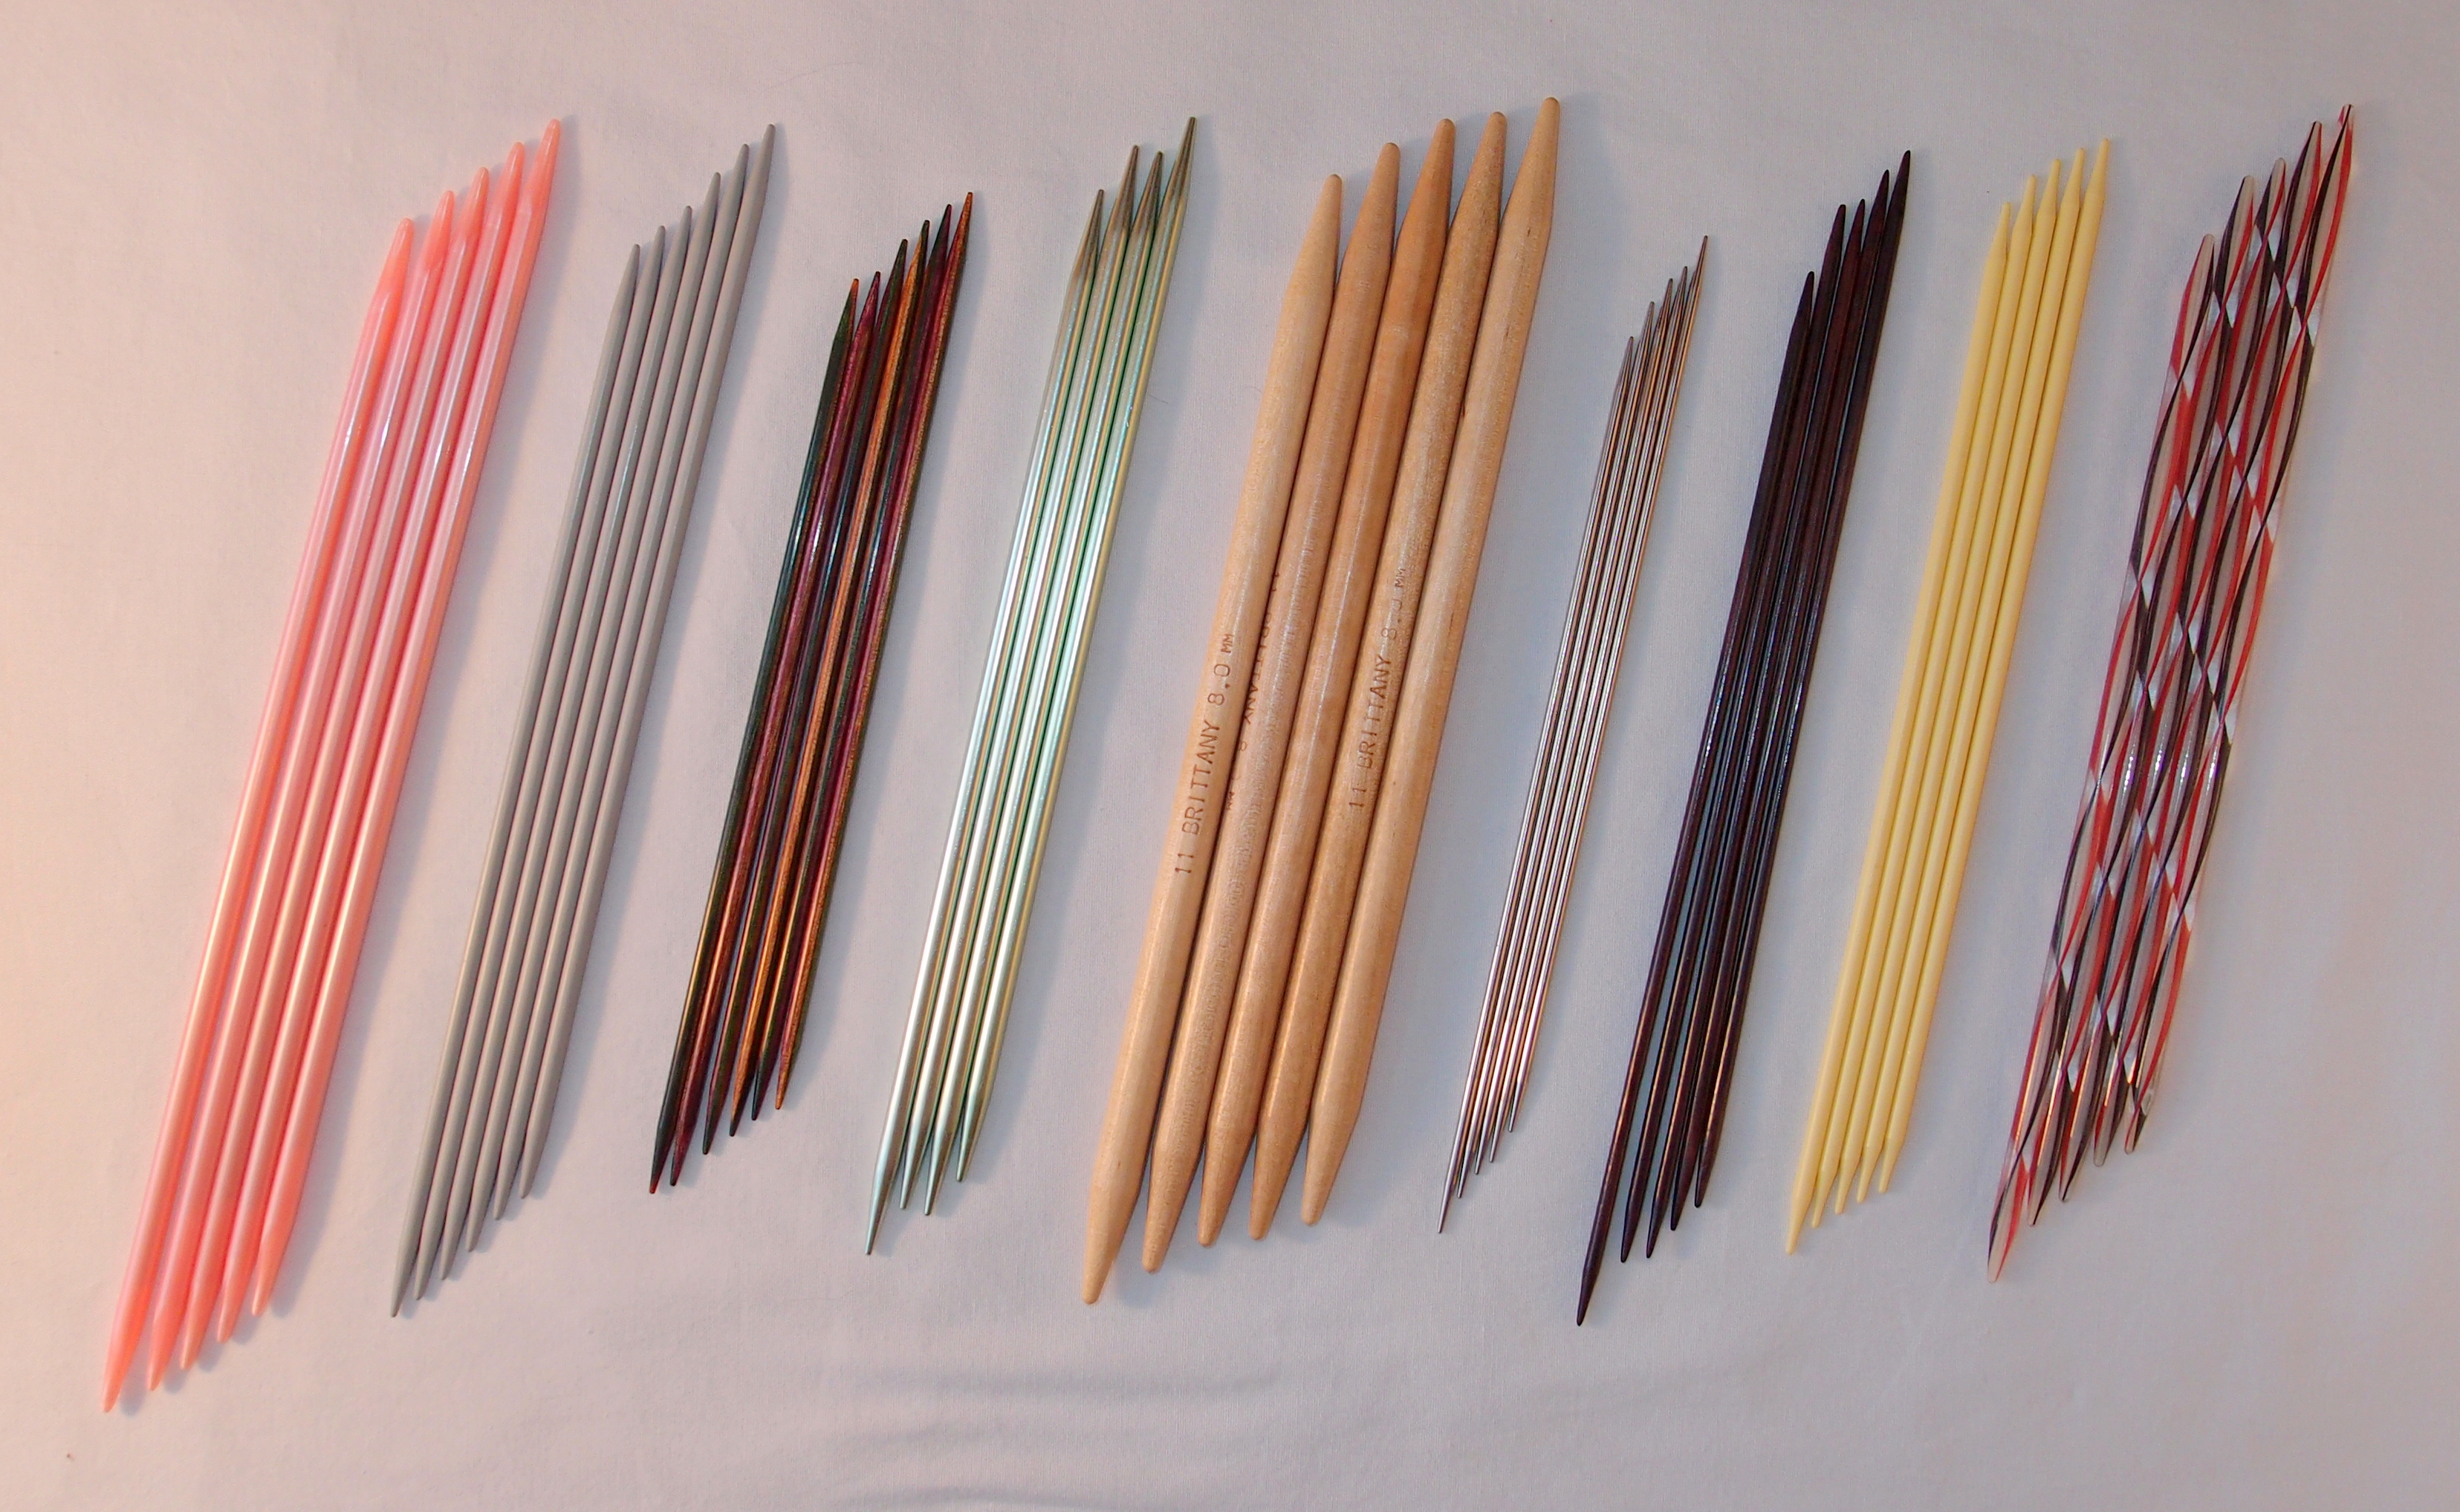 Knitting Tools : File:Double pointed knitting needles.JPG - Wikimedia Commons